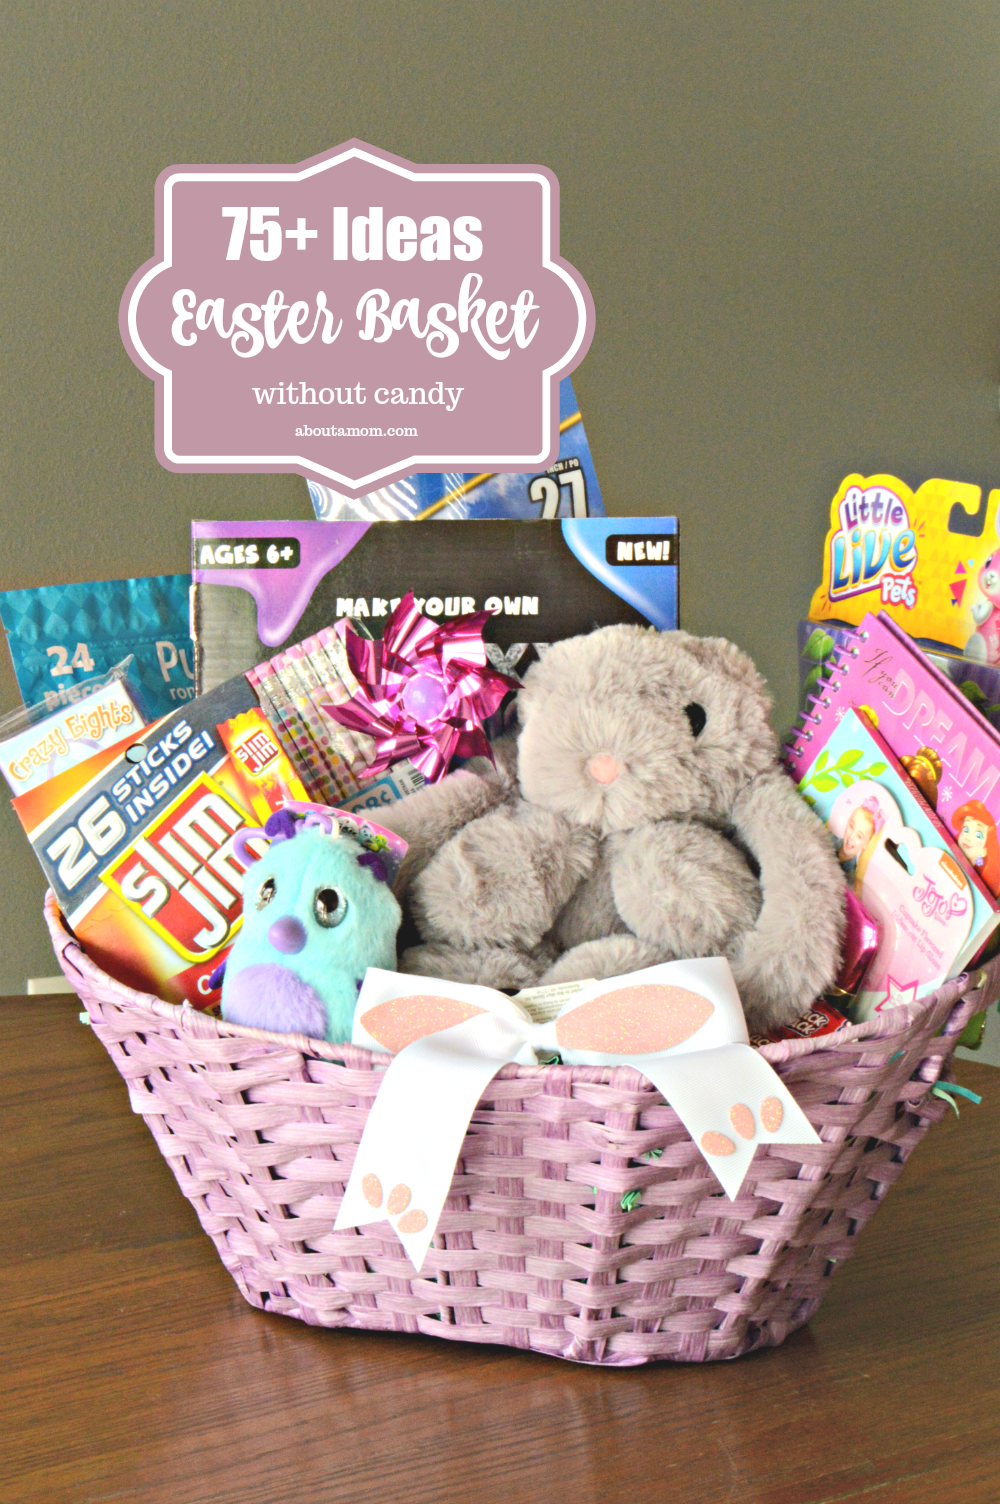 75 fun easter basket ideas about a mom are you trying to avoid sugar crazed children this easter heres a list of negle